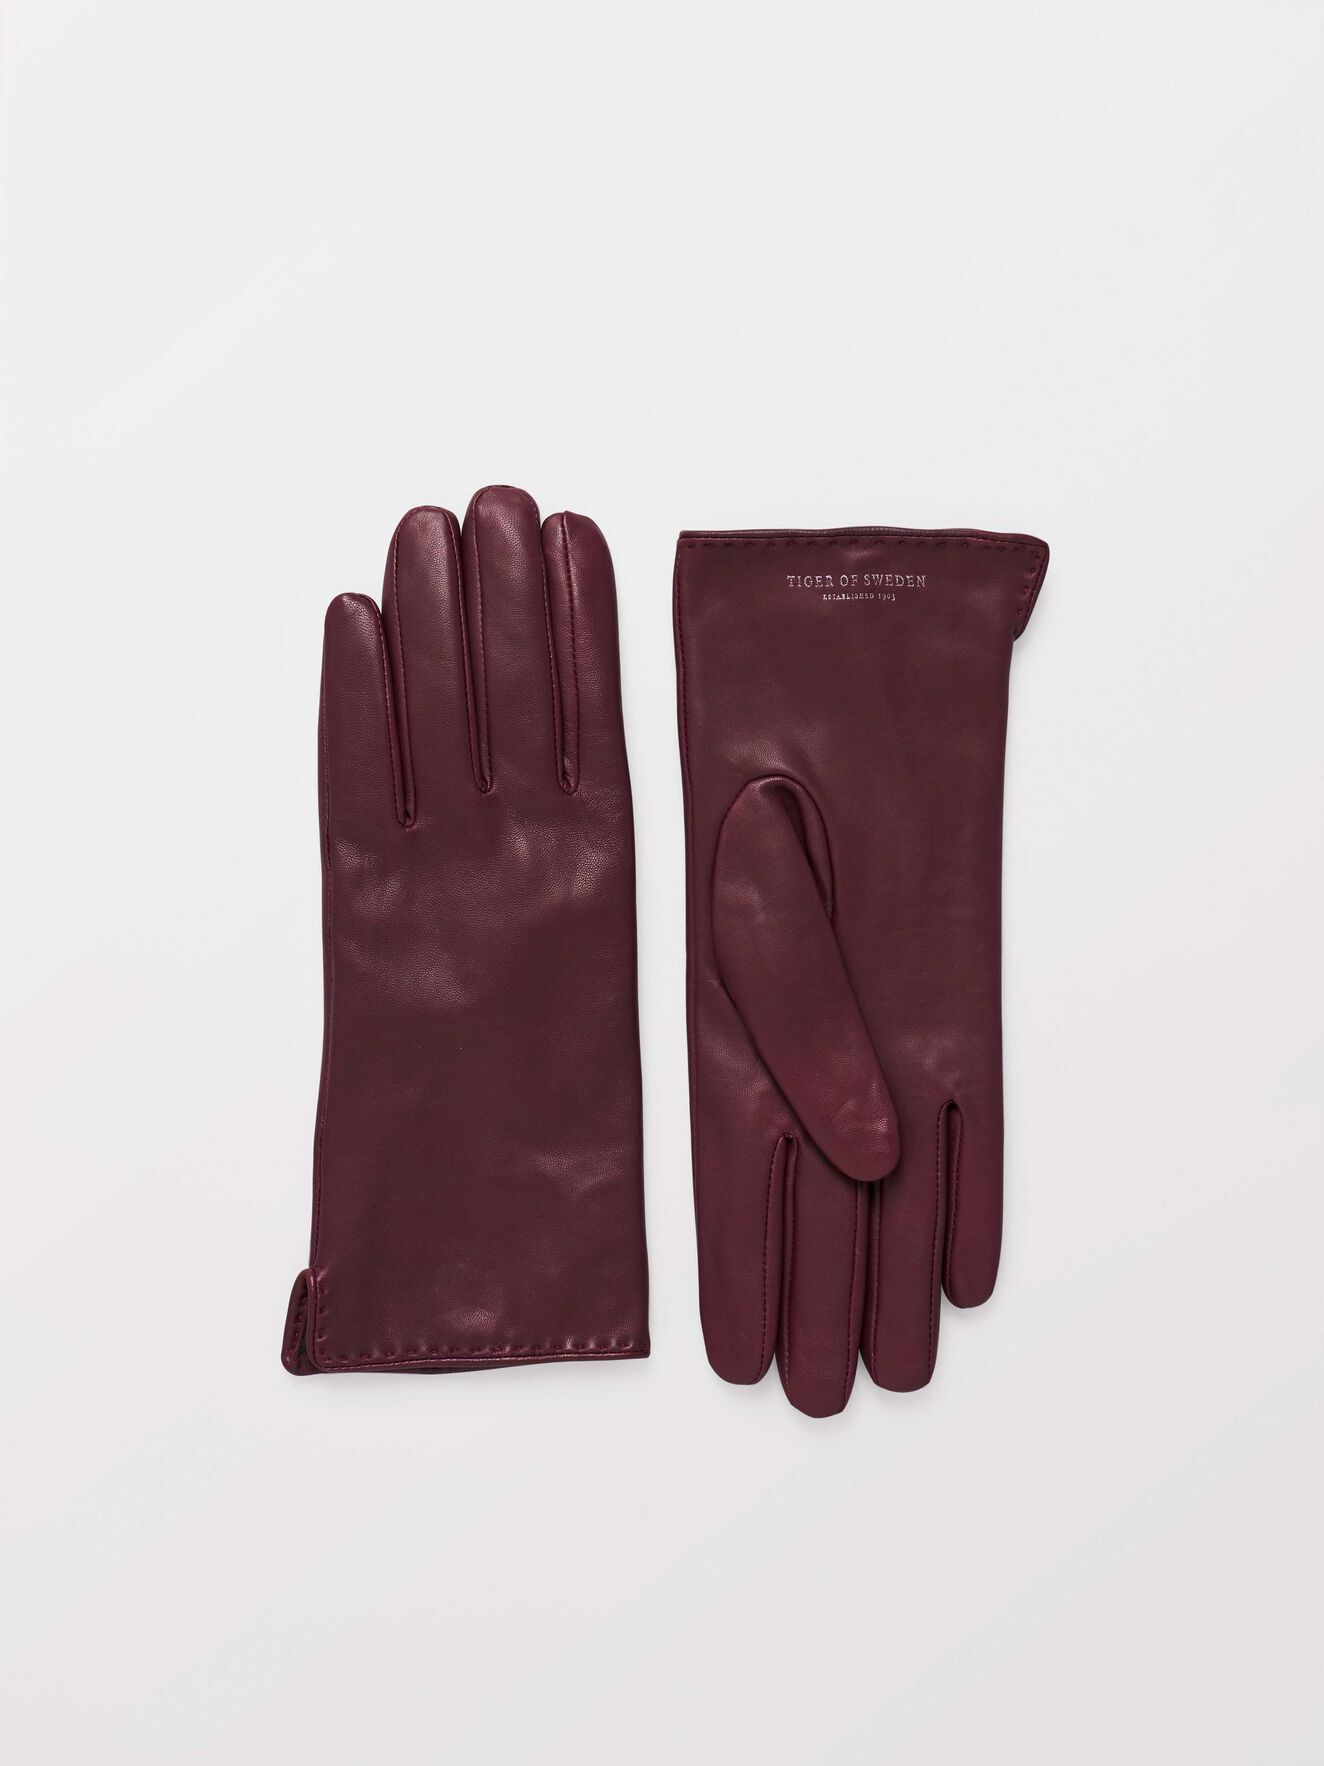 Lian Gloves in Dark red from Tiger of Sweden